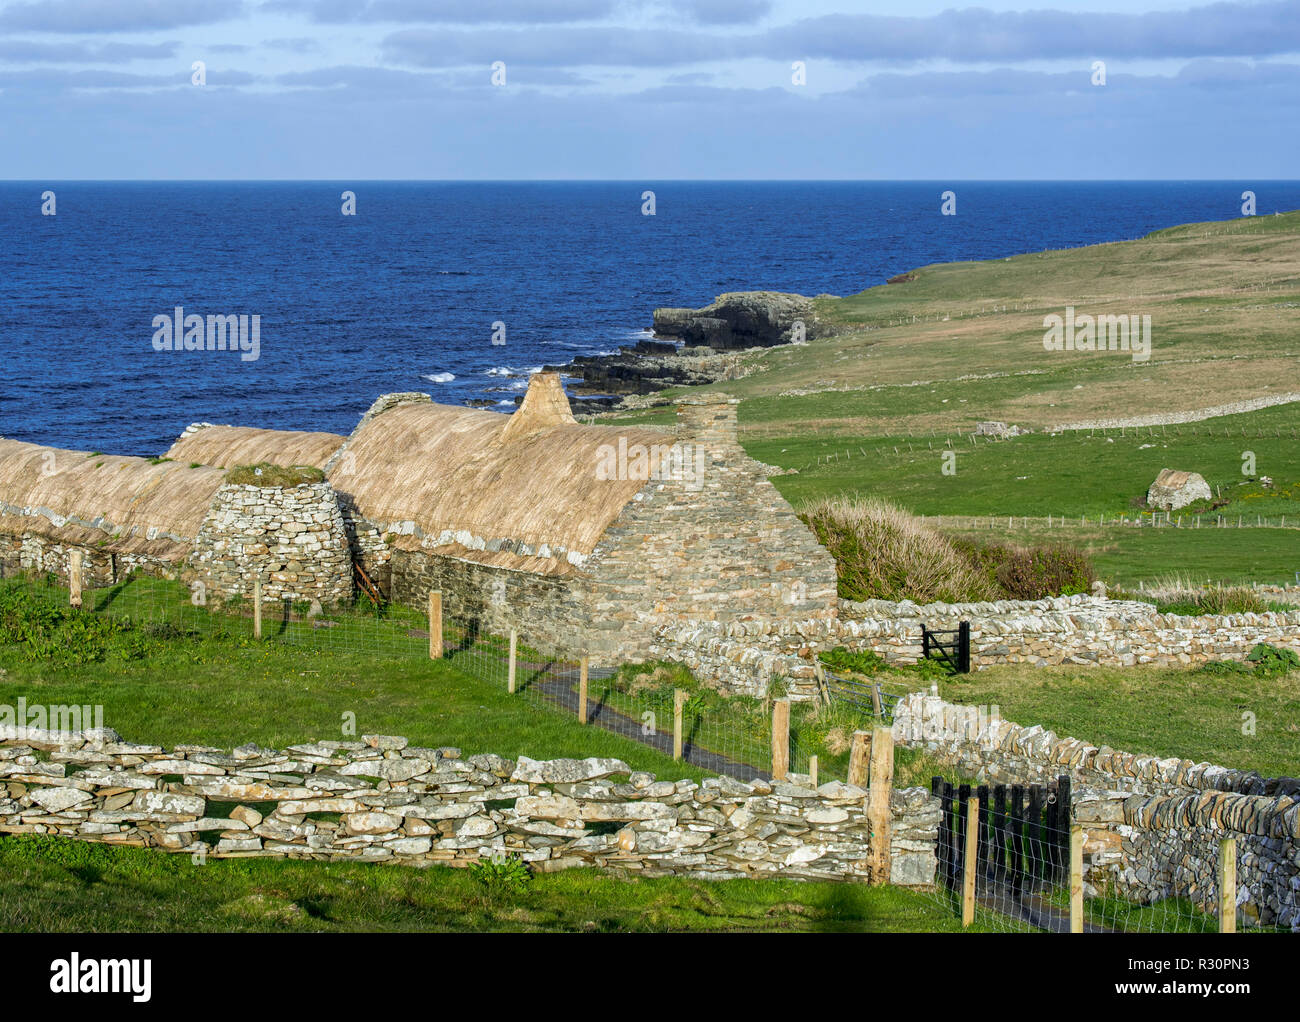 Croft House Museum / Crofthouse Museum, restored straw-thatched cottage at Boddam, Shetland Islands, Scotland, UK - Stock Image